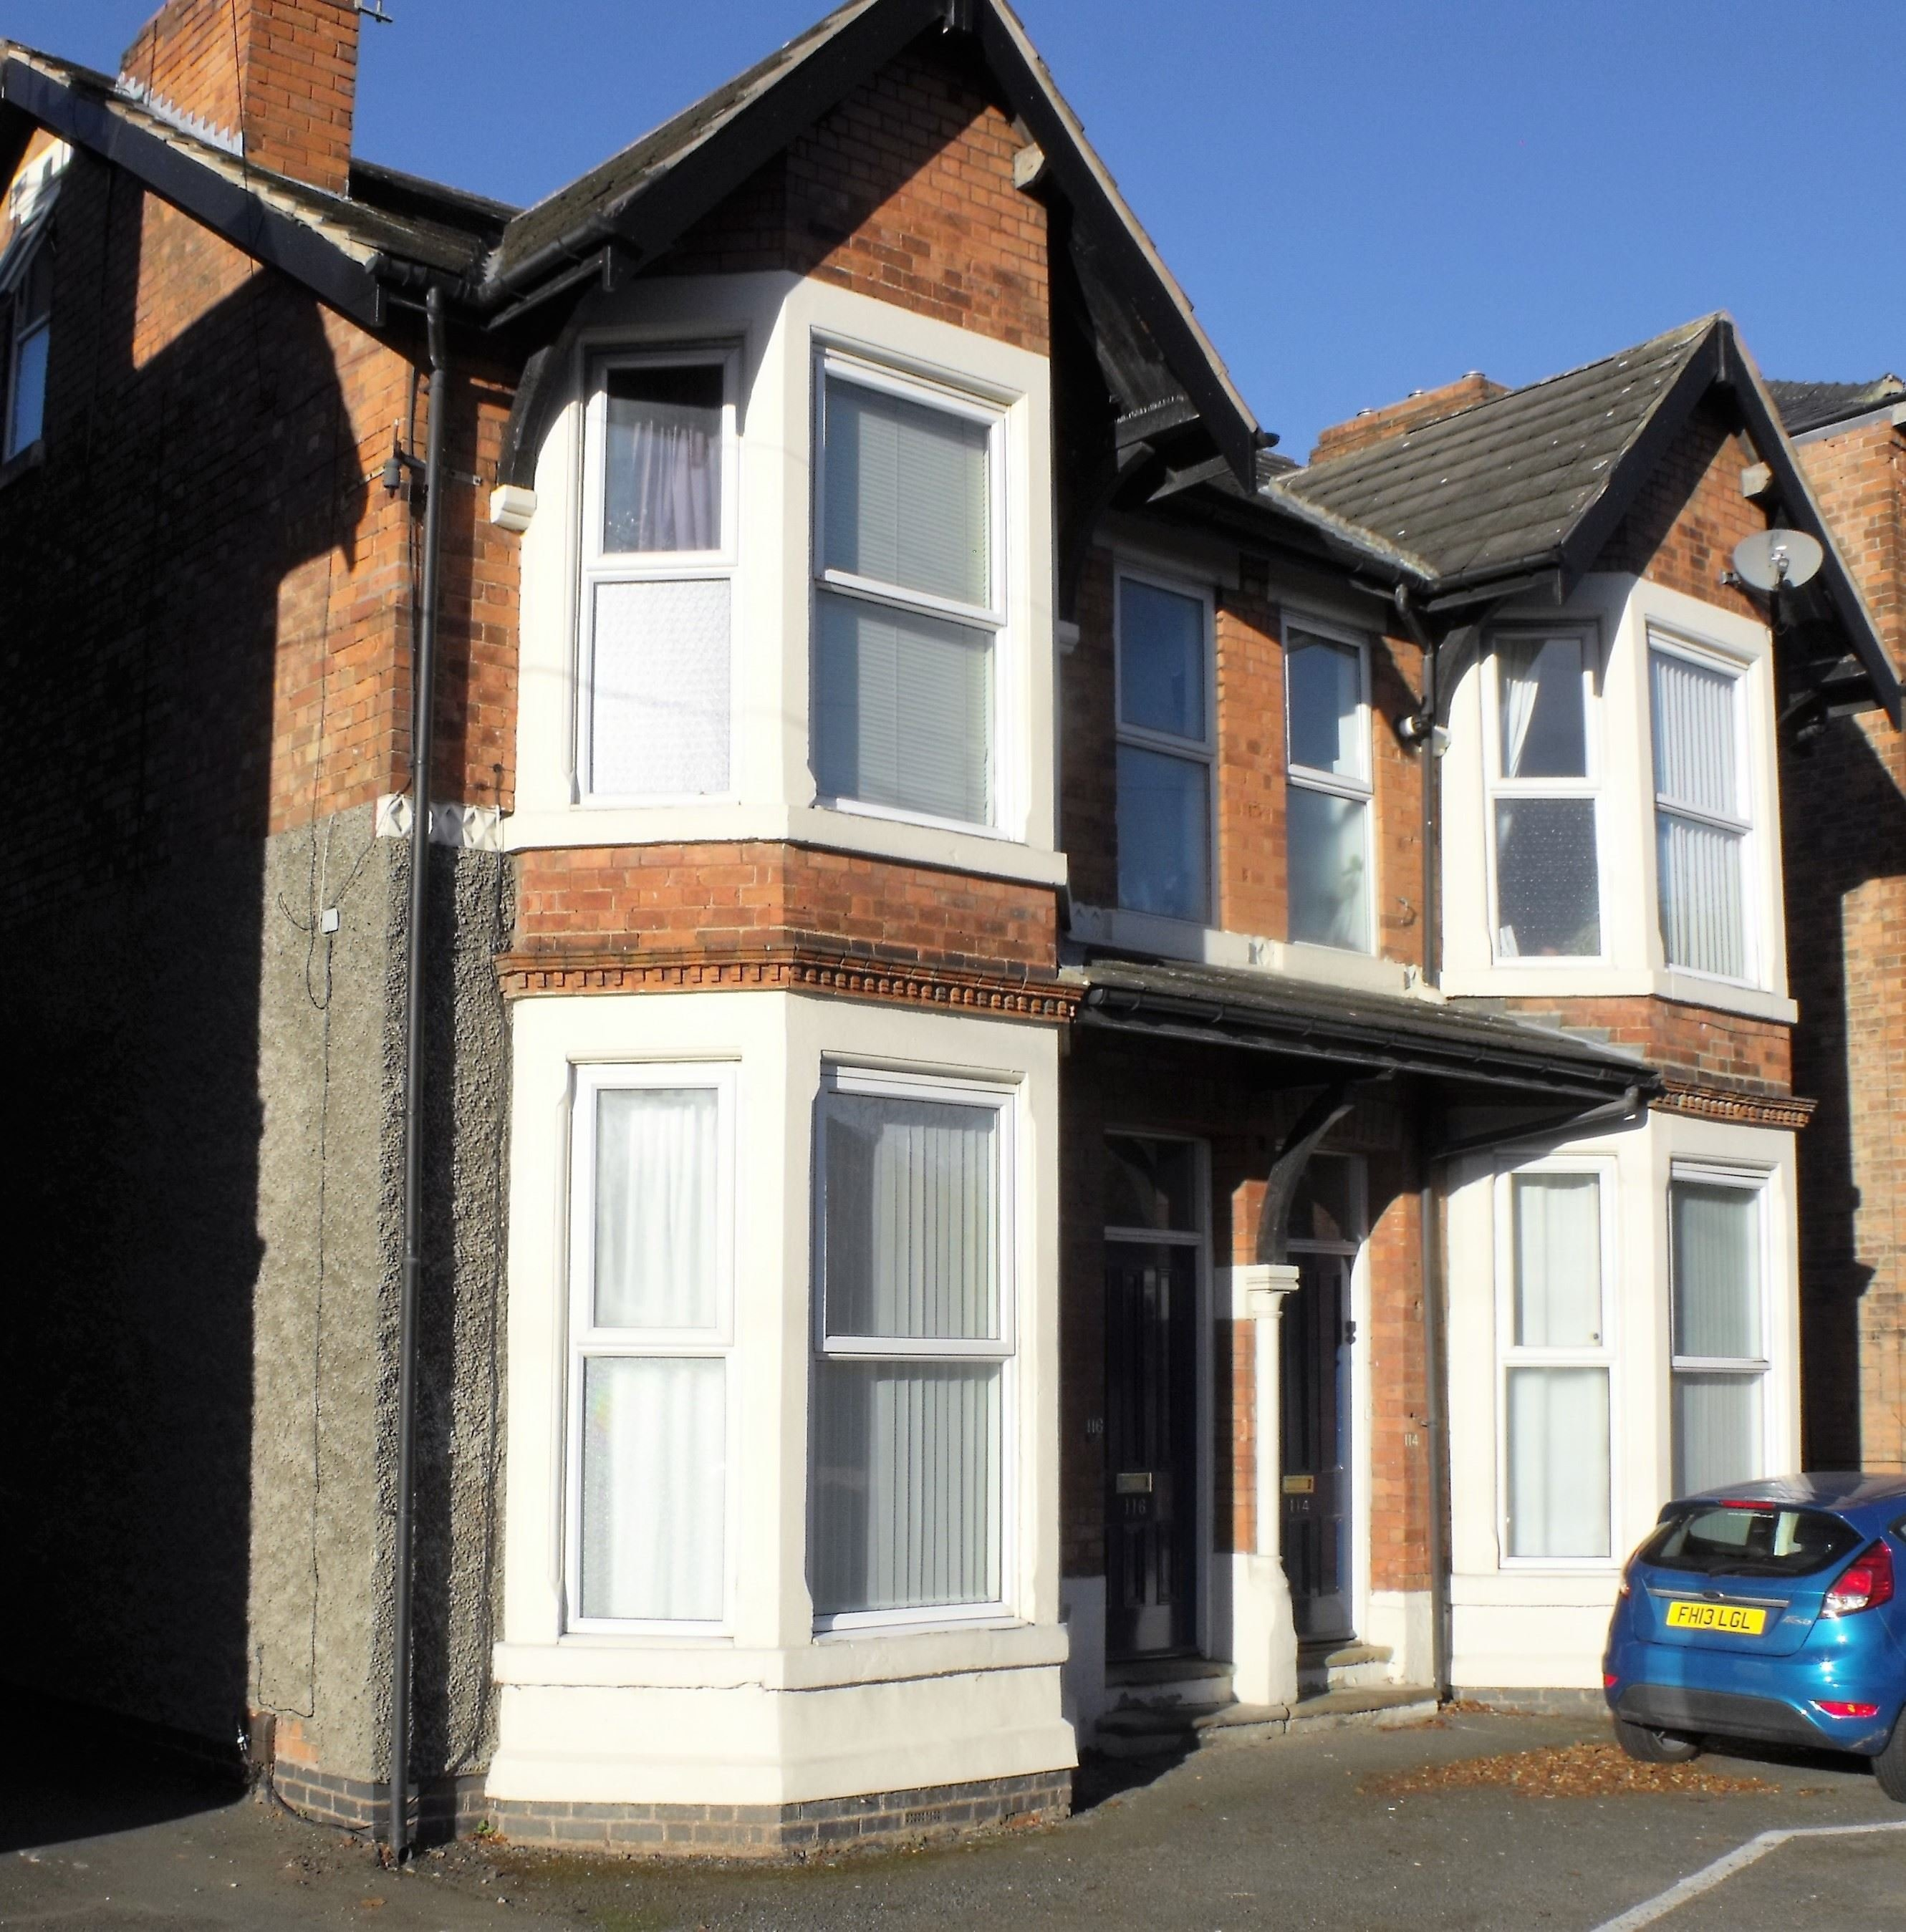 Best 1 Bedroom Flat To Rent Loughborough Road Nottingham Ng2 7Je With Pictures Original 1024 x 768